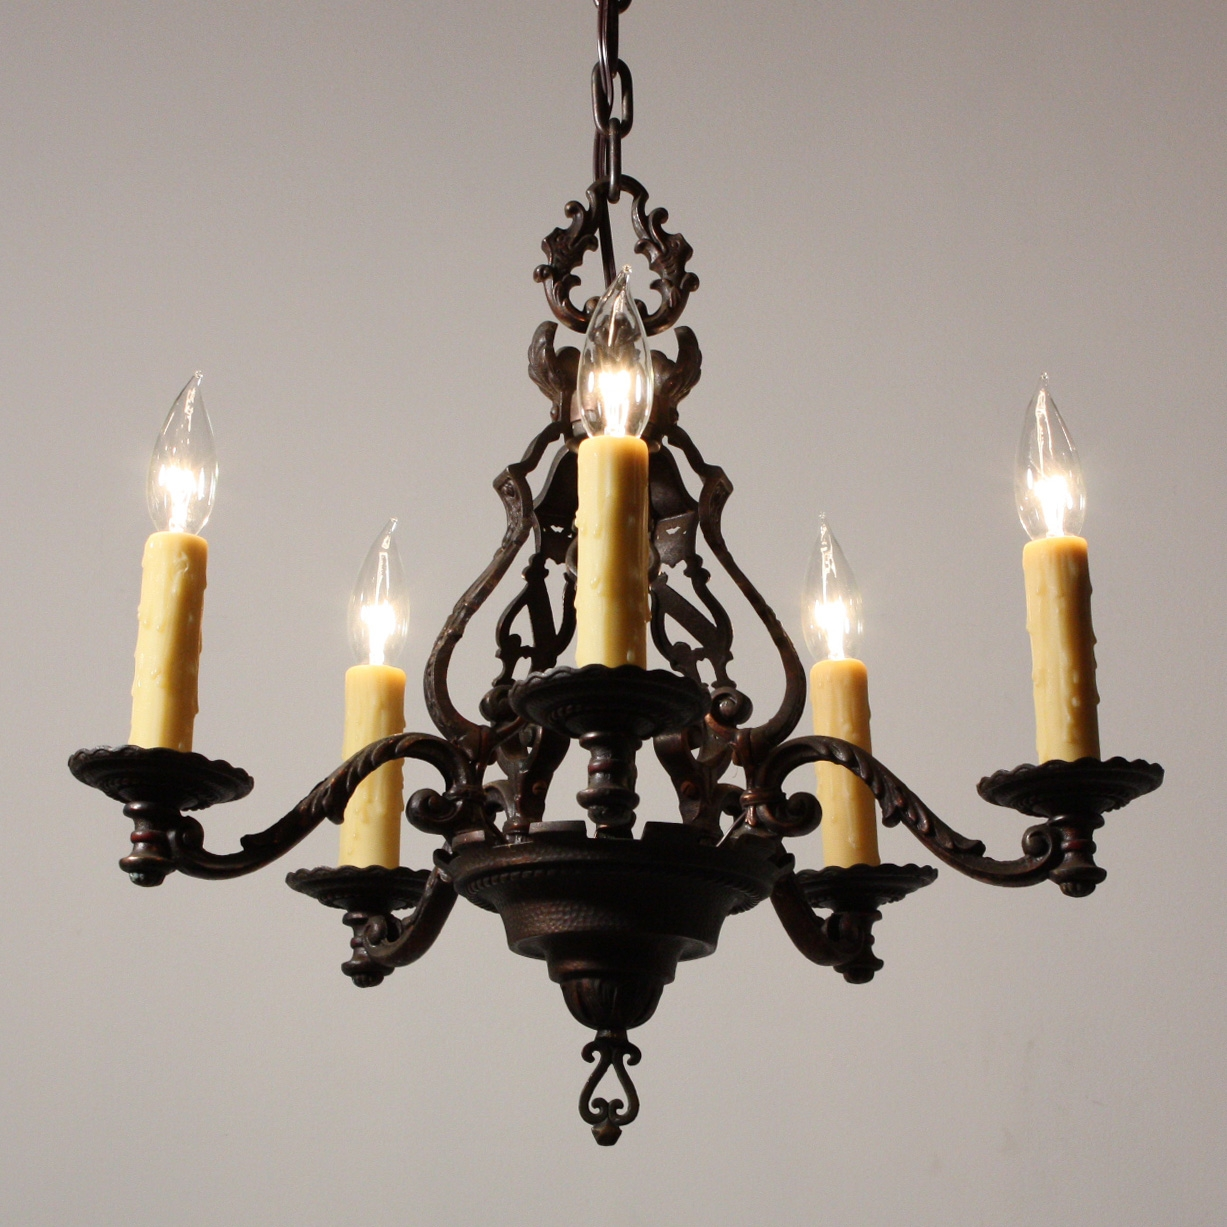 Magnificent Antique Figural Five Light Chandelier Cast Iron Inside Cast Iron Antique Chandelier (#11 of 12)